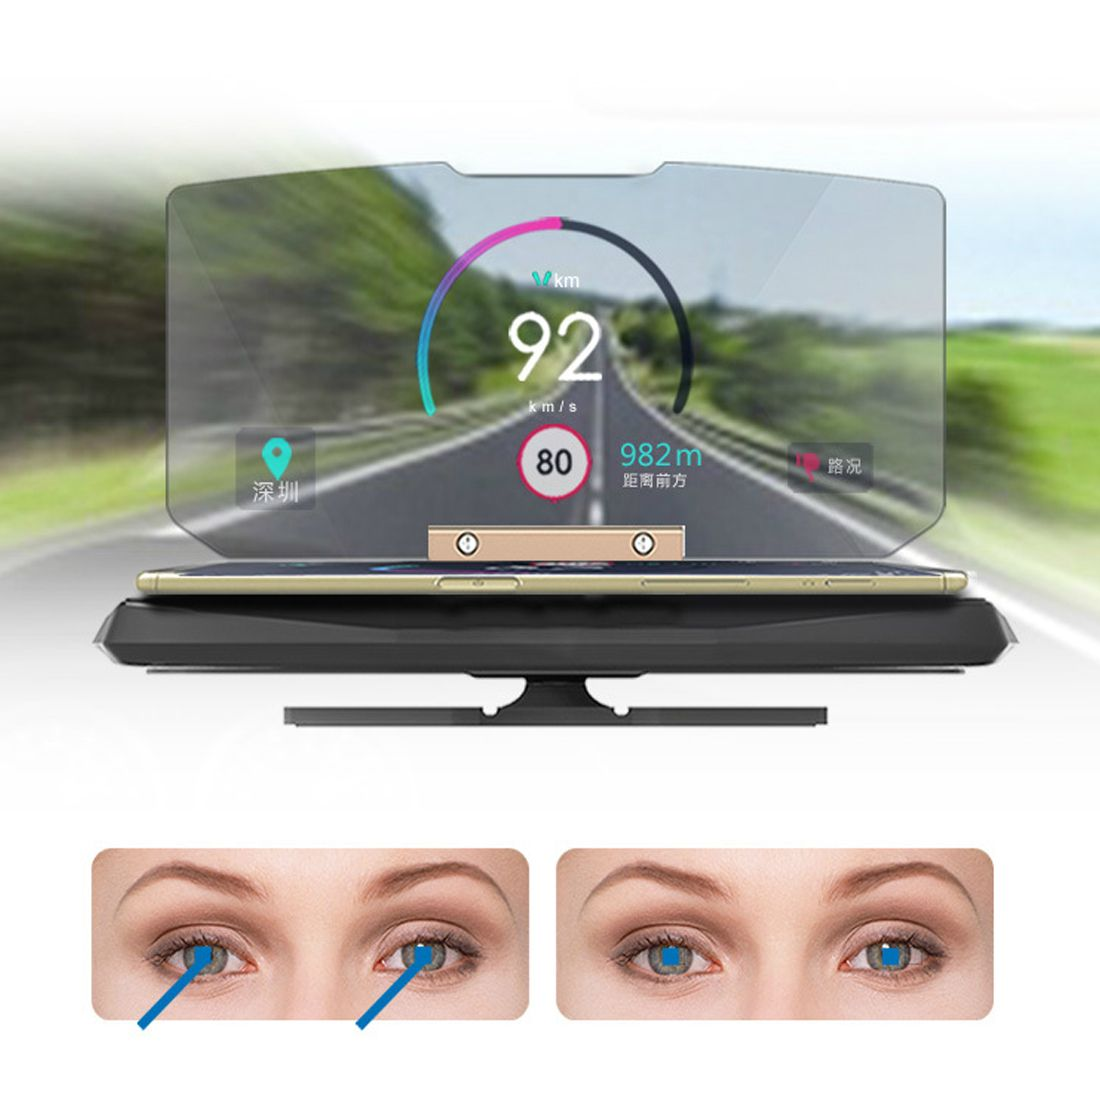 NOYOKERE 6.5 Inch Universal Car HUD Holder Head Up Display Projector Bracket For GPS Navigation For iPhone Car Styling